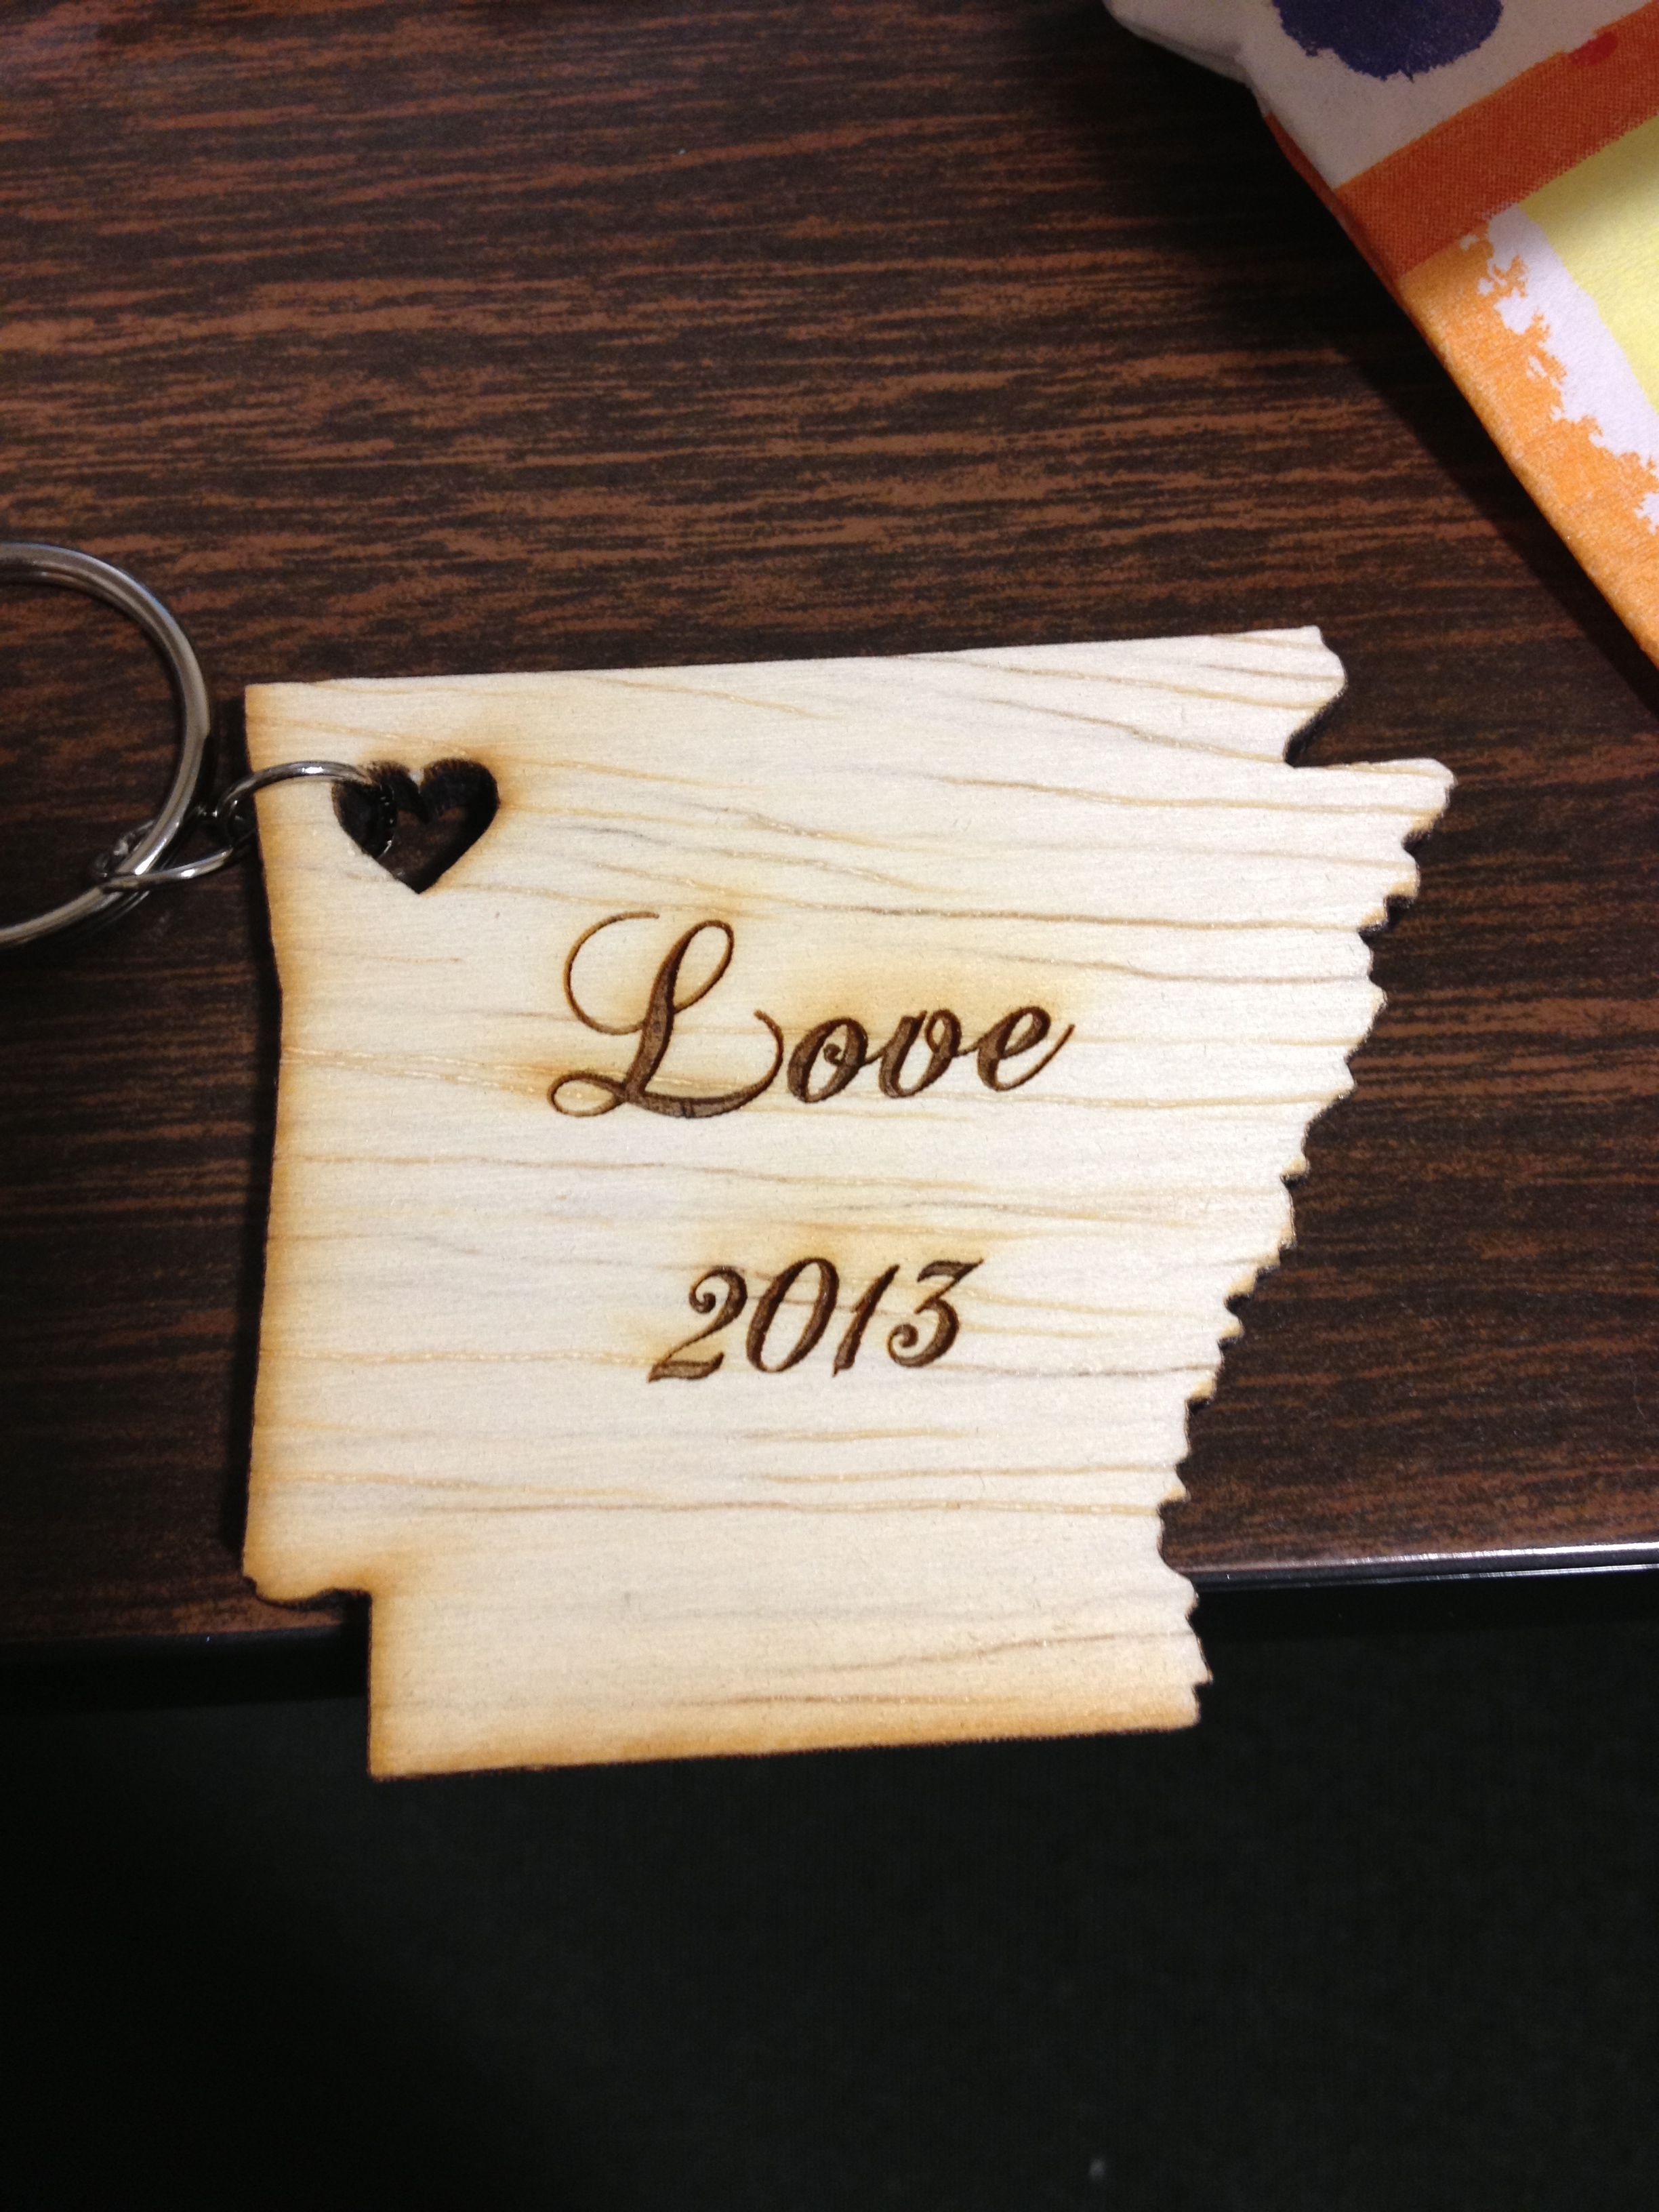 This has to be the cutest and most unique party/wedding favor I've seen. The heart marks the location where the couple met! (Fayetteville)